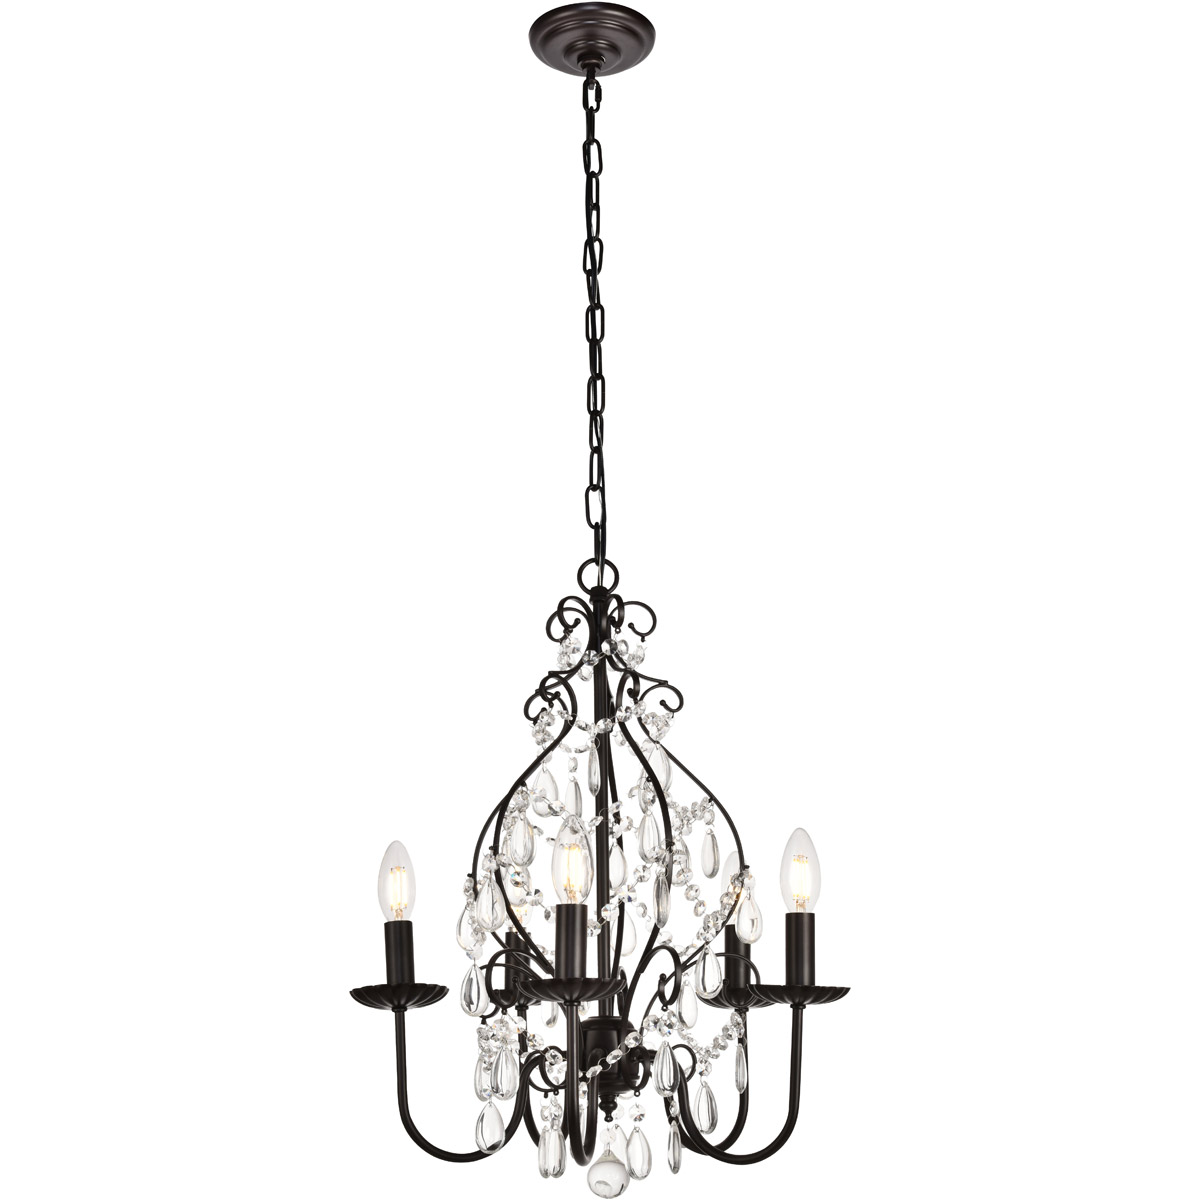 Details About Crystal Chandelier Oil Rubbed Bronze Dining Living Room Wrought Iron 5 Light 23